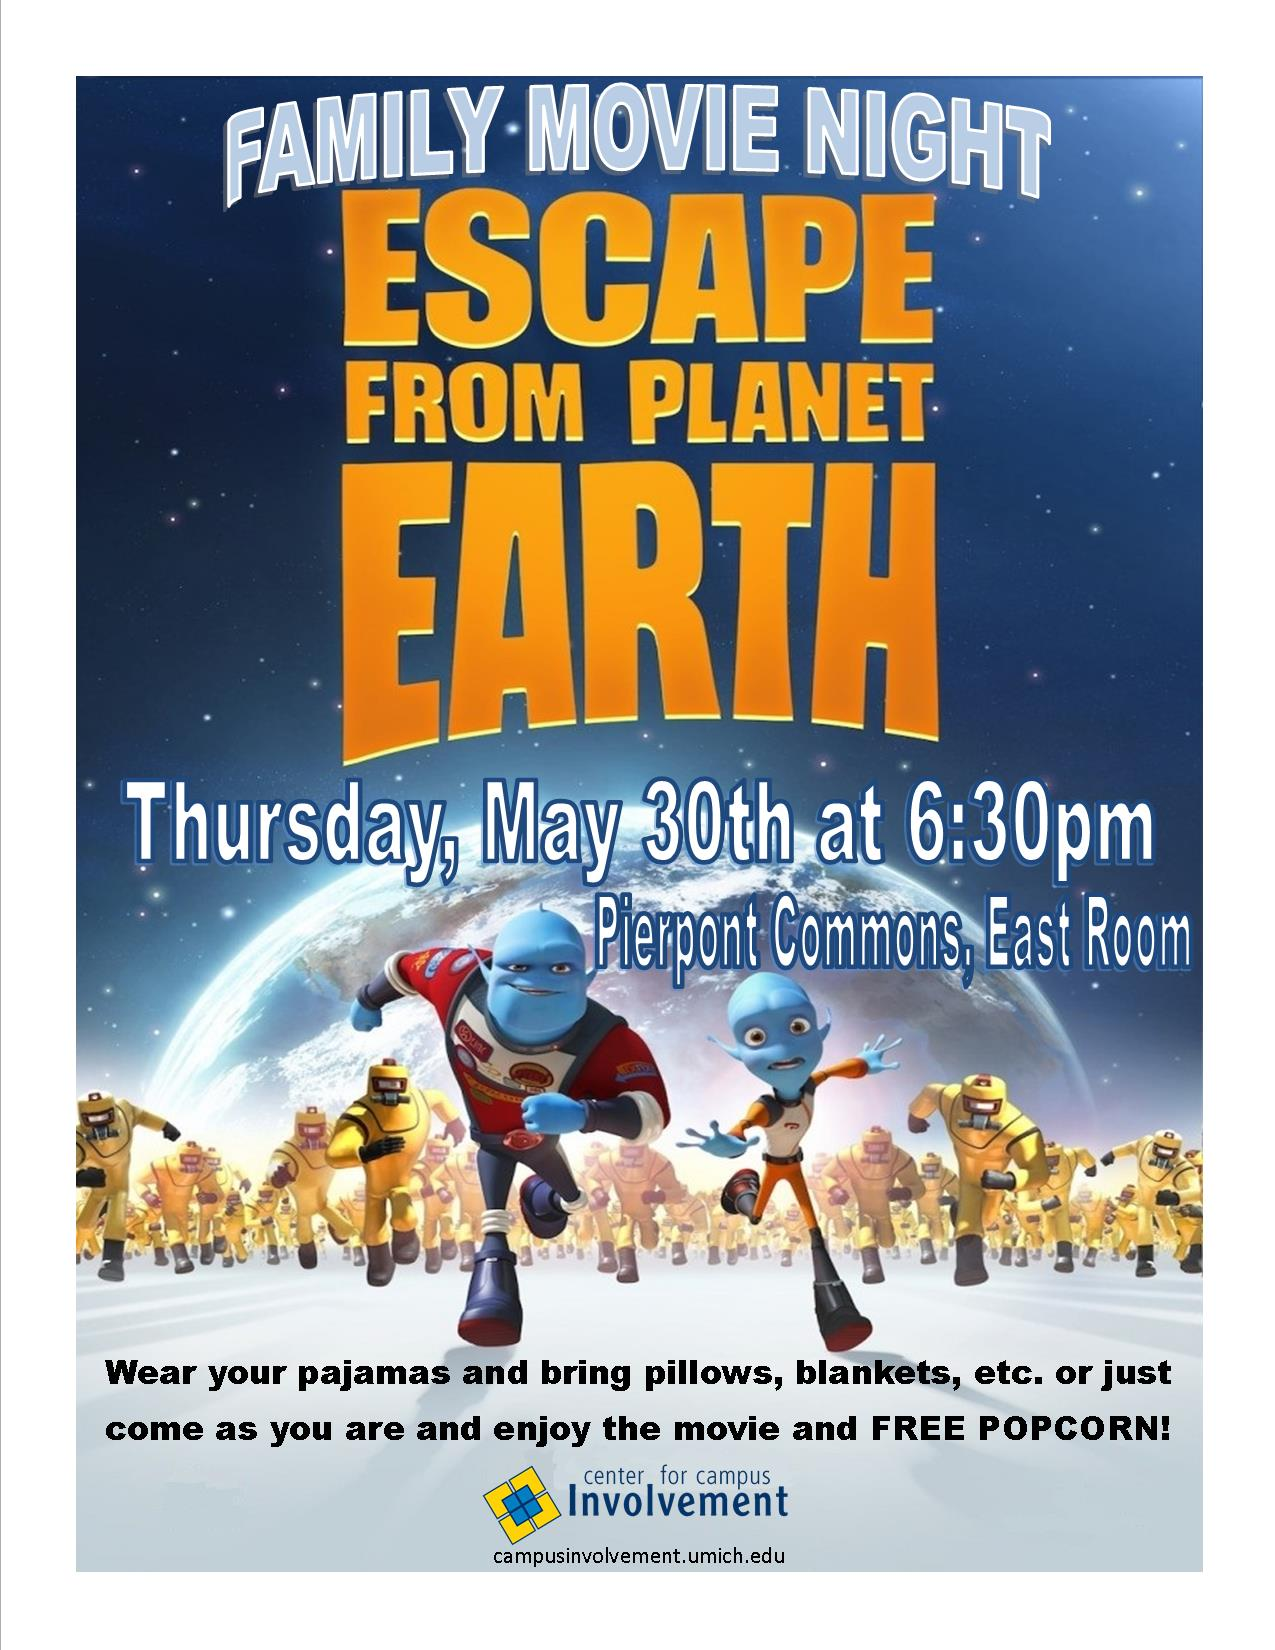 Family Movie Night - Escape from Planet Earth | Campus